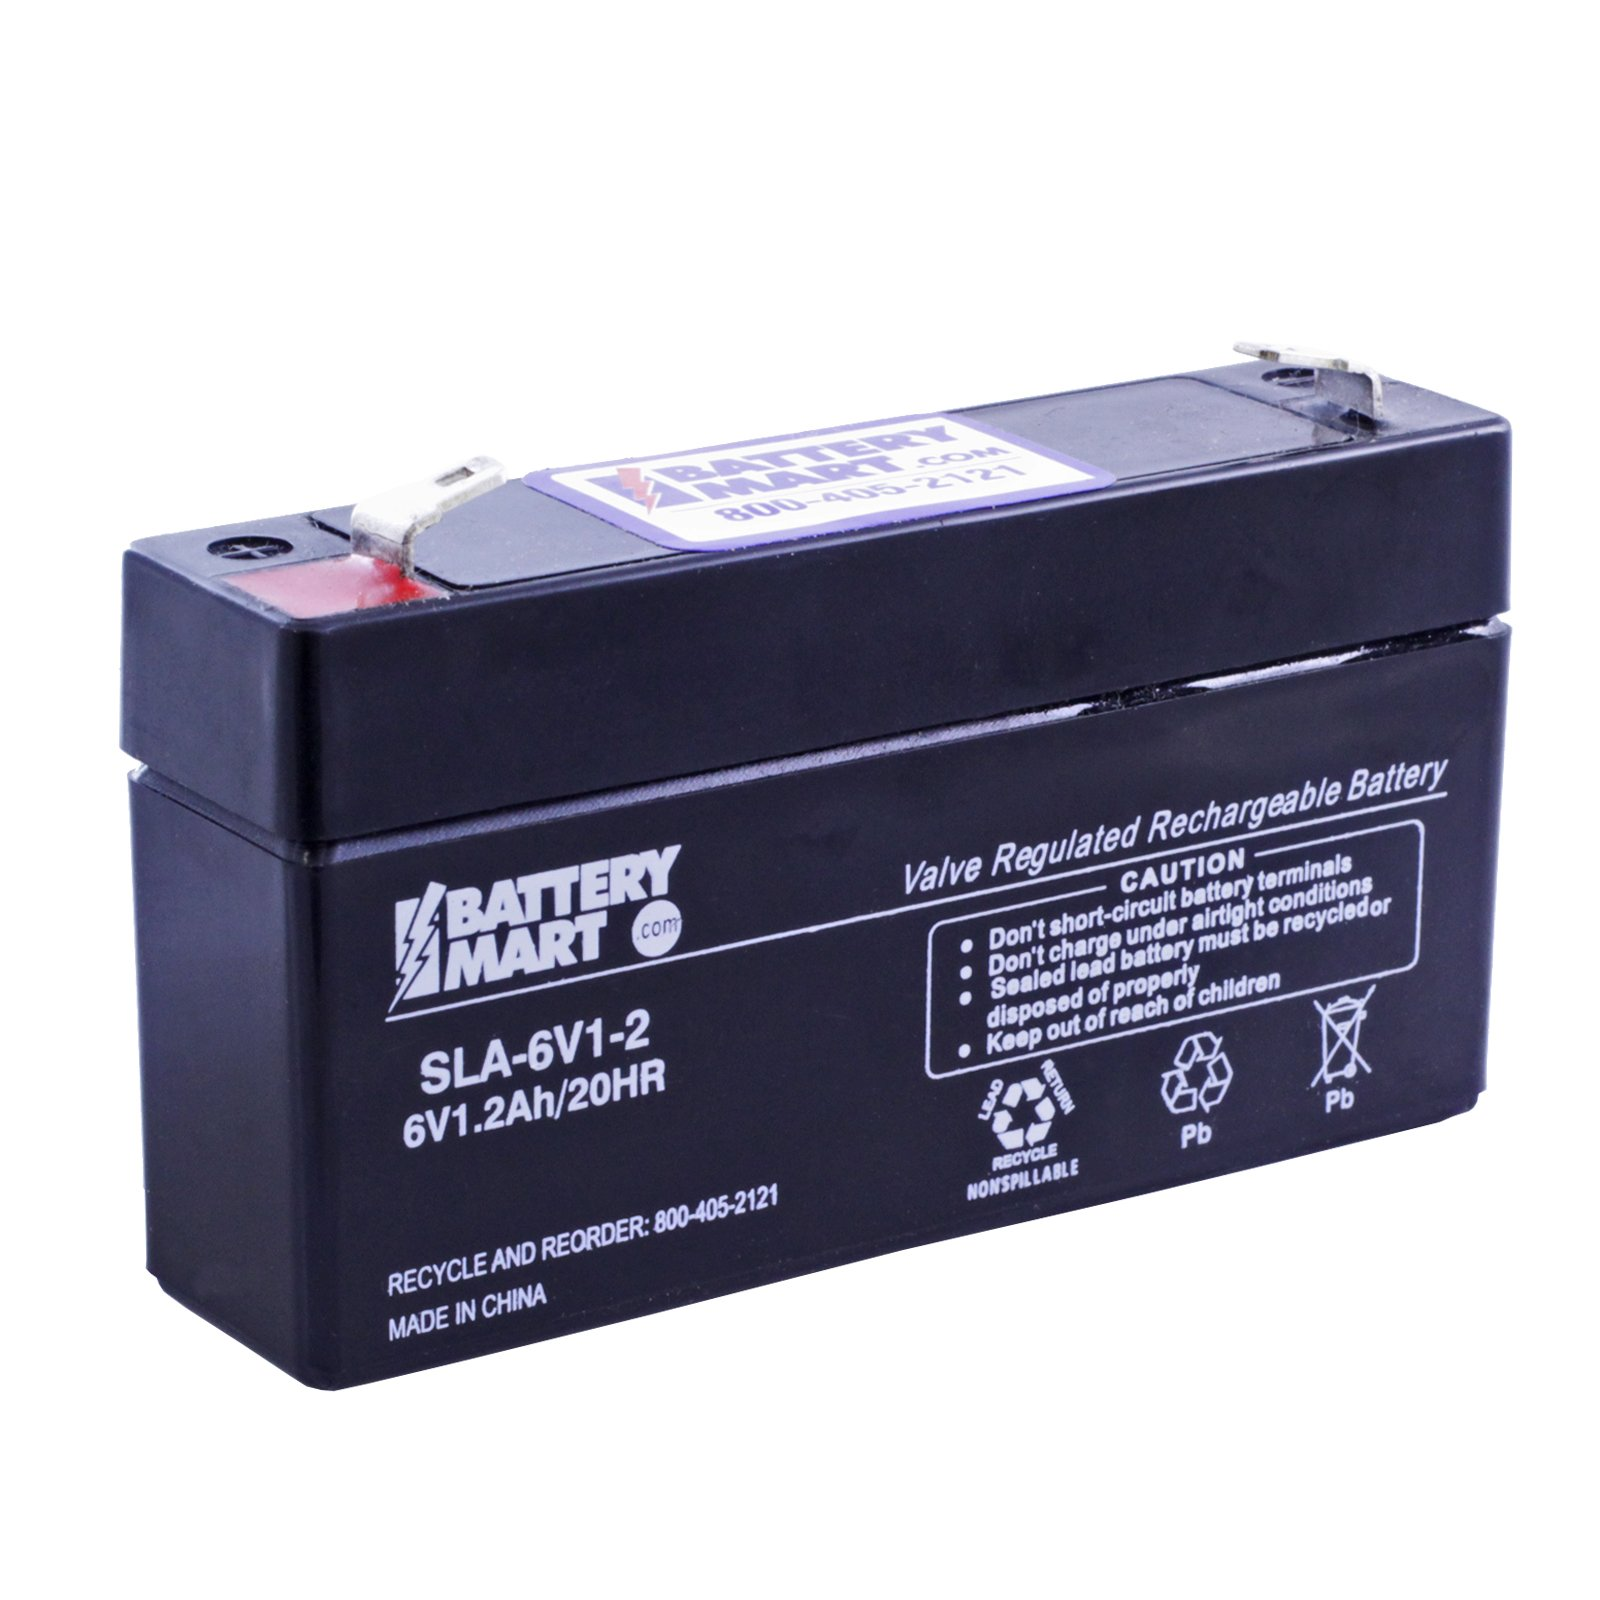 6 volt 1 2 ah sealed lead acid battery f1 terminal free shipping. Black Bedroom Furniture Sets. Home Design Ideas